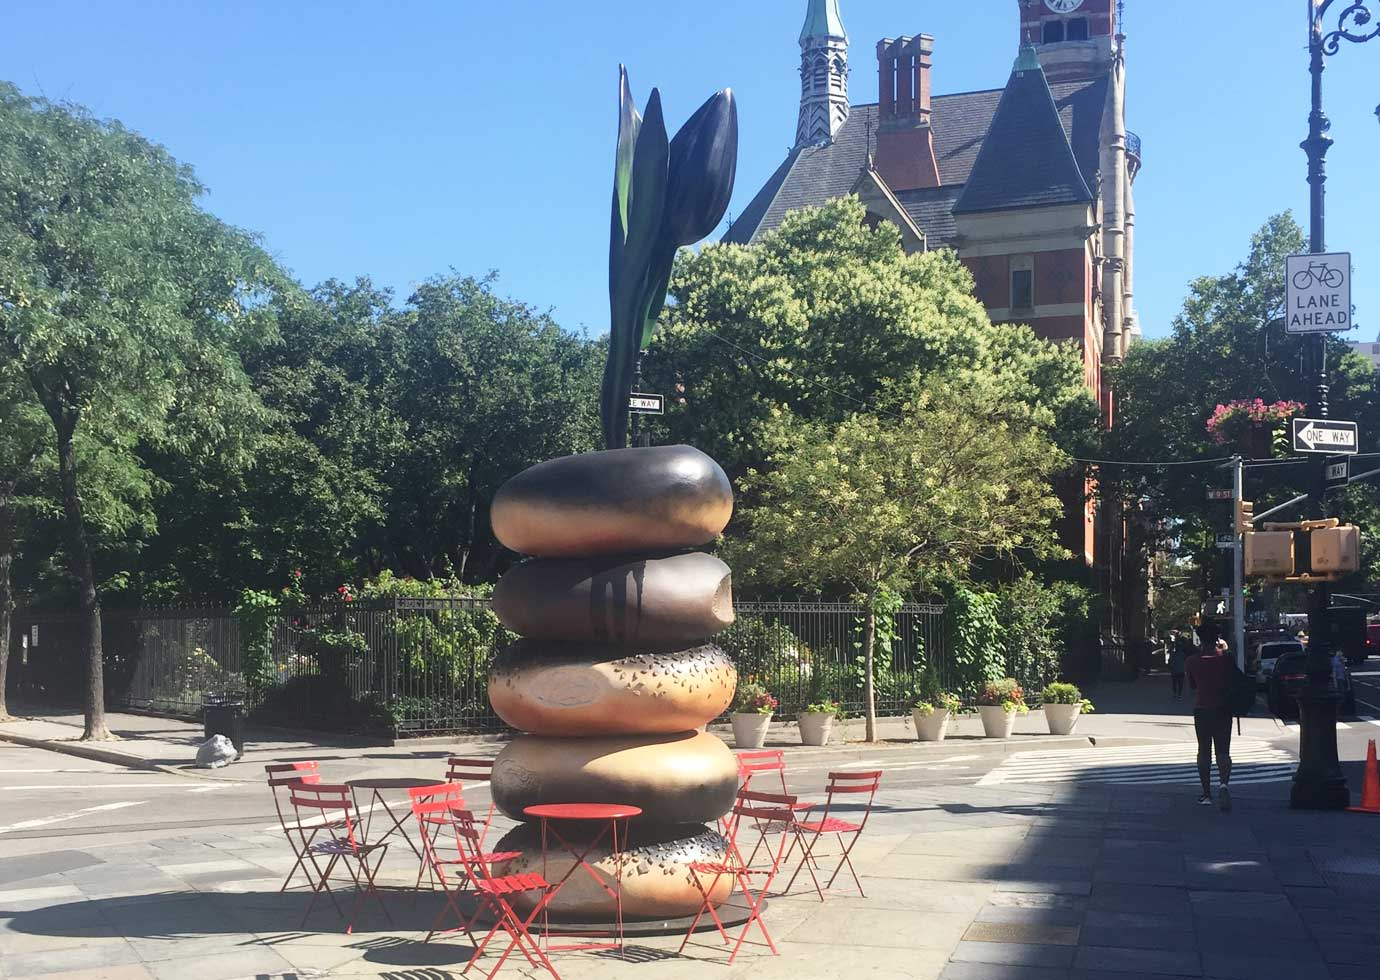 bagel-sculpture